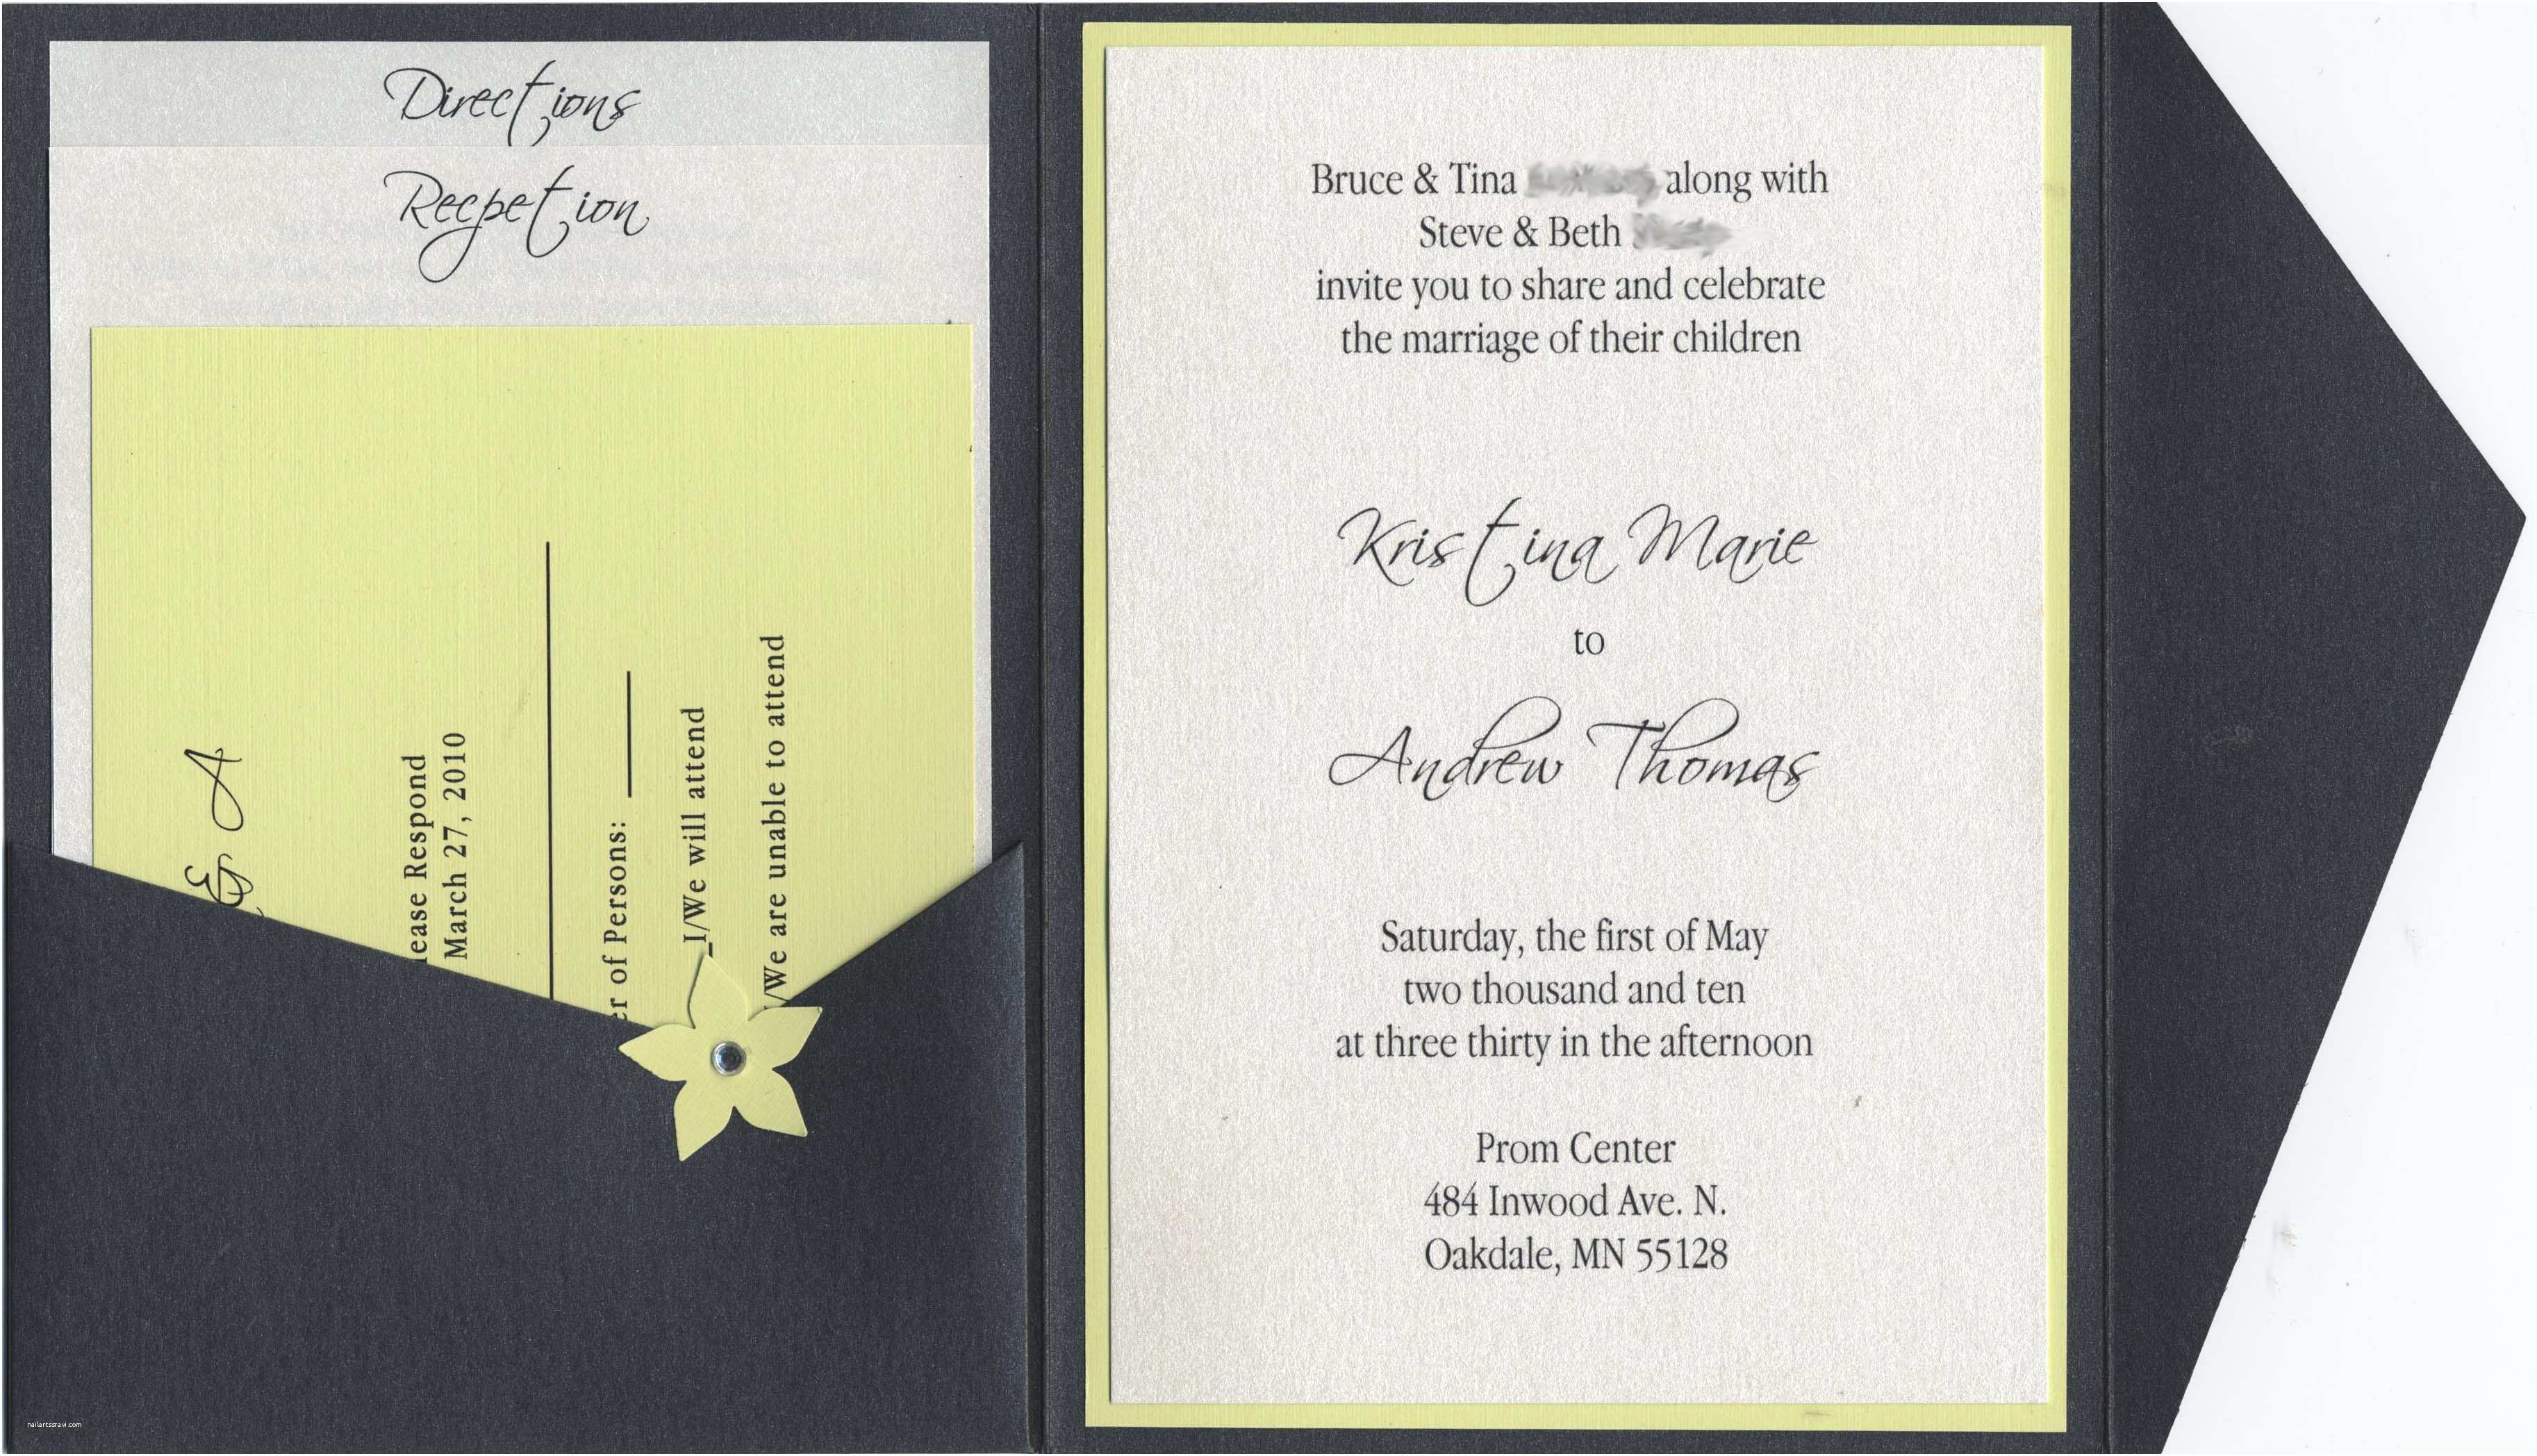 What to Include In Wedding Invitation Cards Ideas with How to Make Wedding Invitations at Home